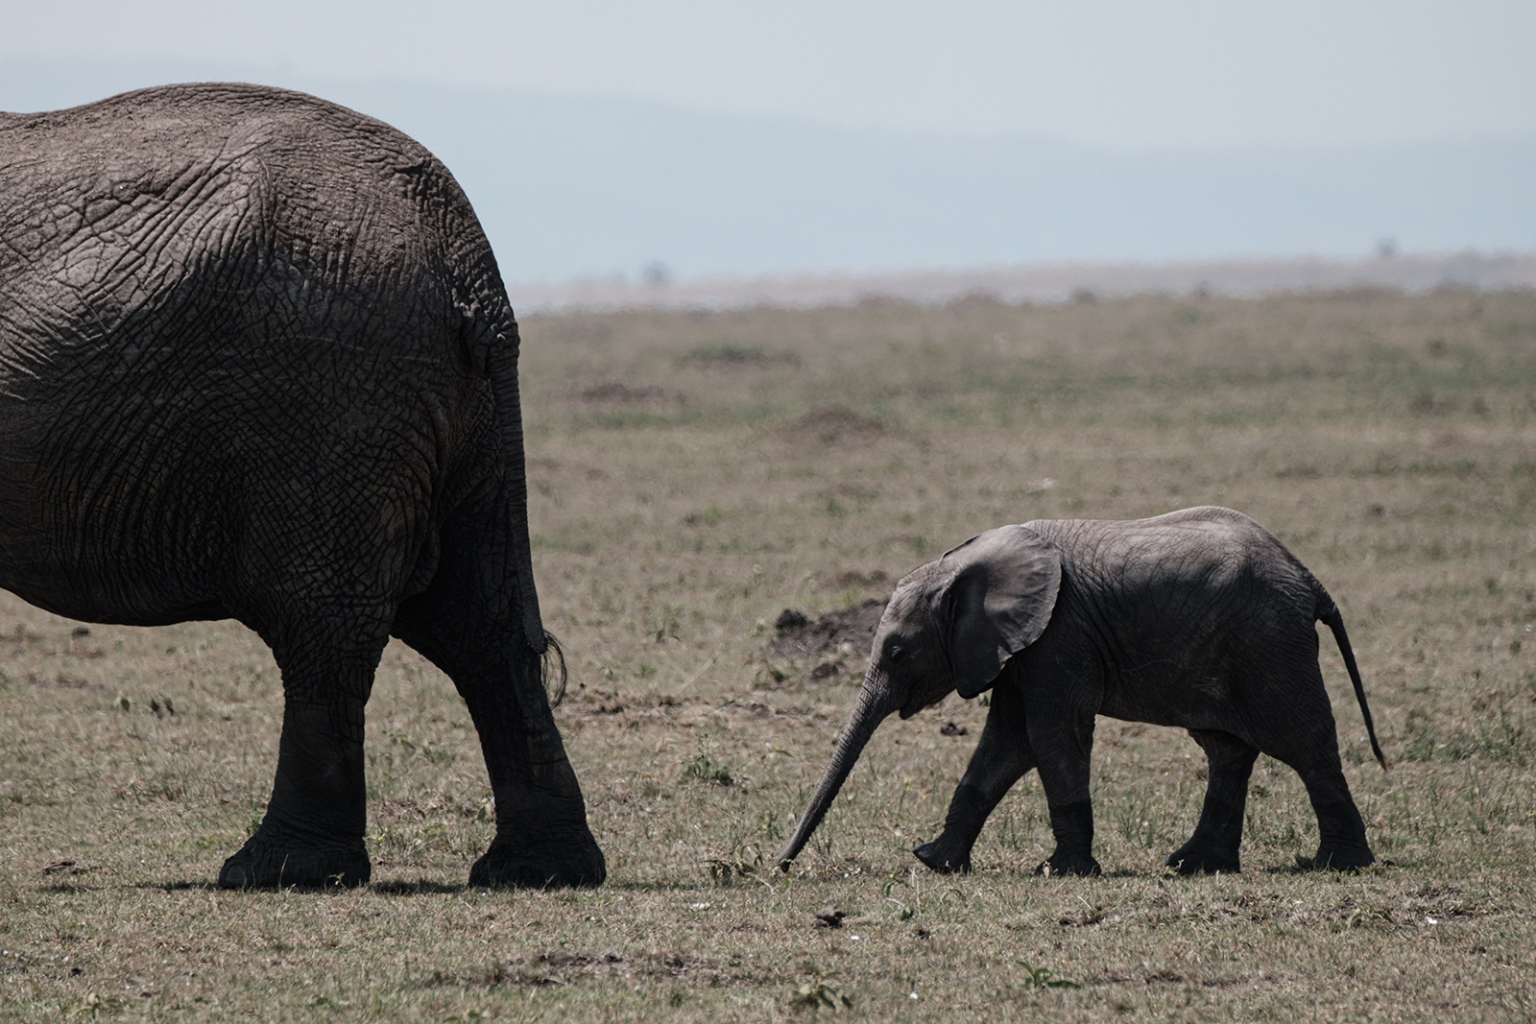 An elephant follows its mother in the Masai Mara game reserve in Kenya on Sept. 20. YASUYOSHI CHIBA/AFP/Getty Images